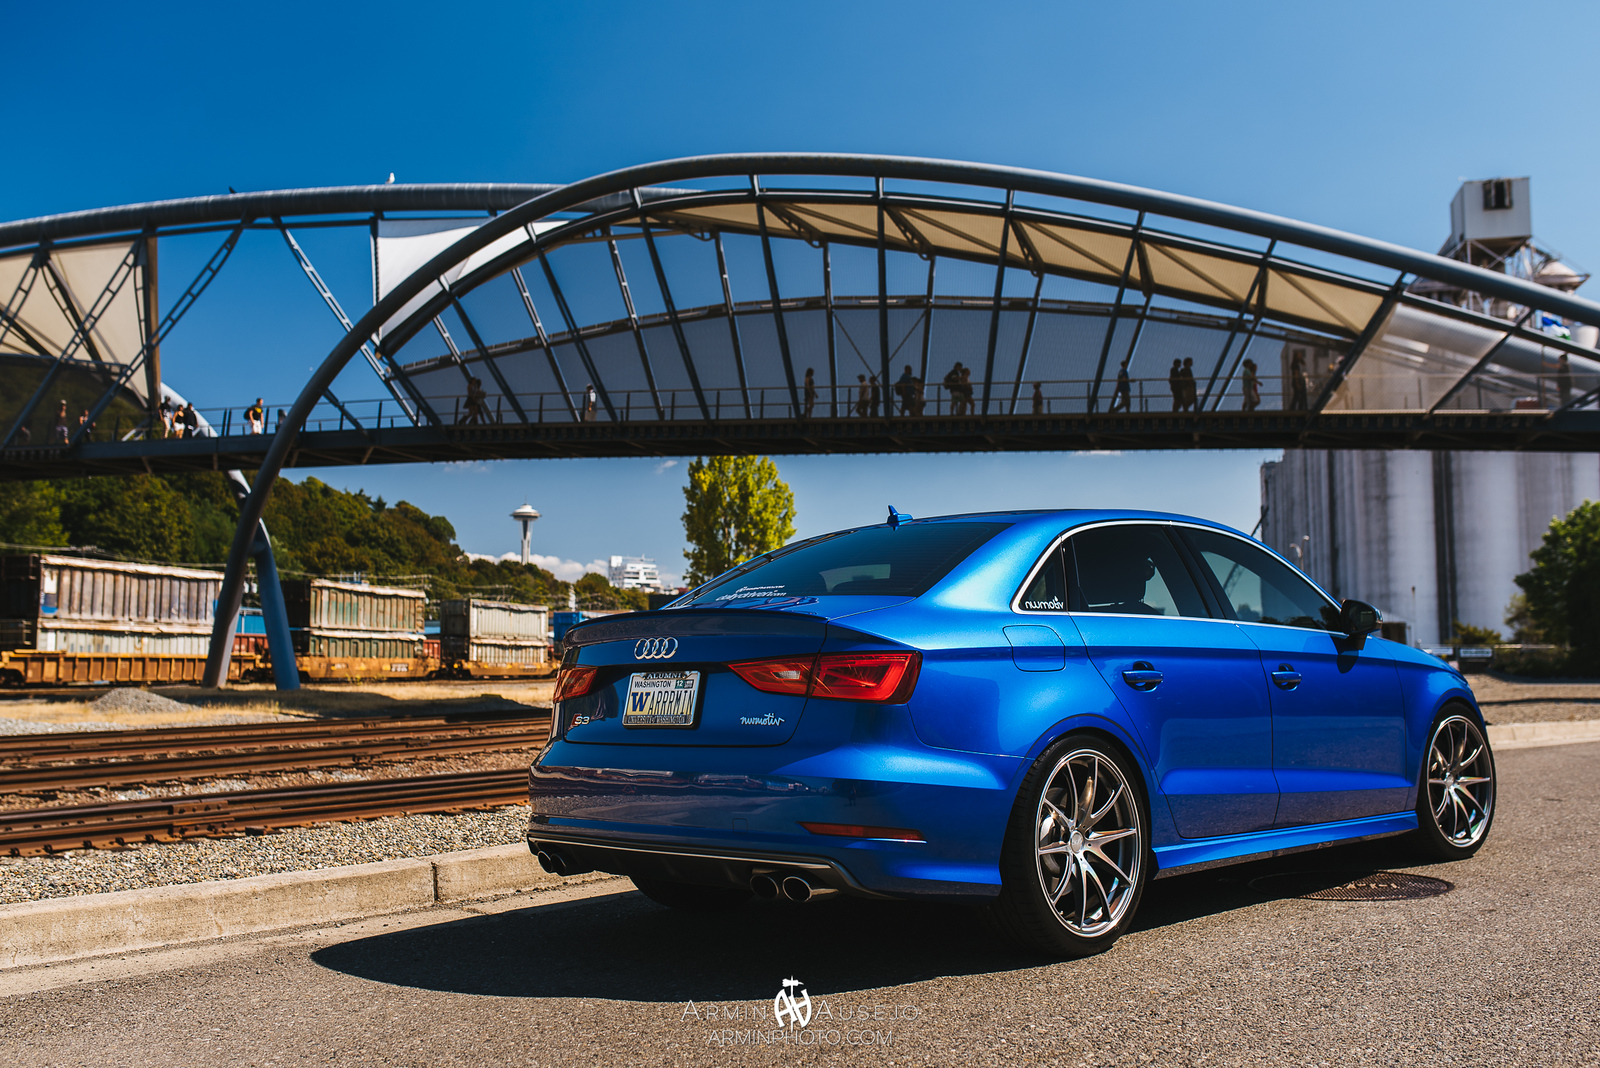 Audi S3 on Volk Racing G25